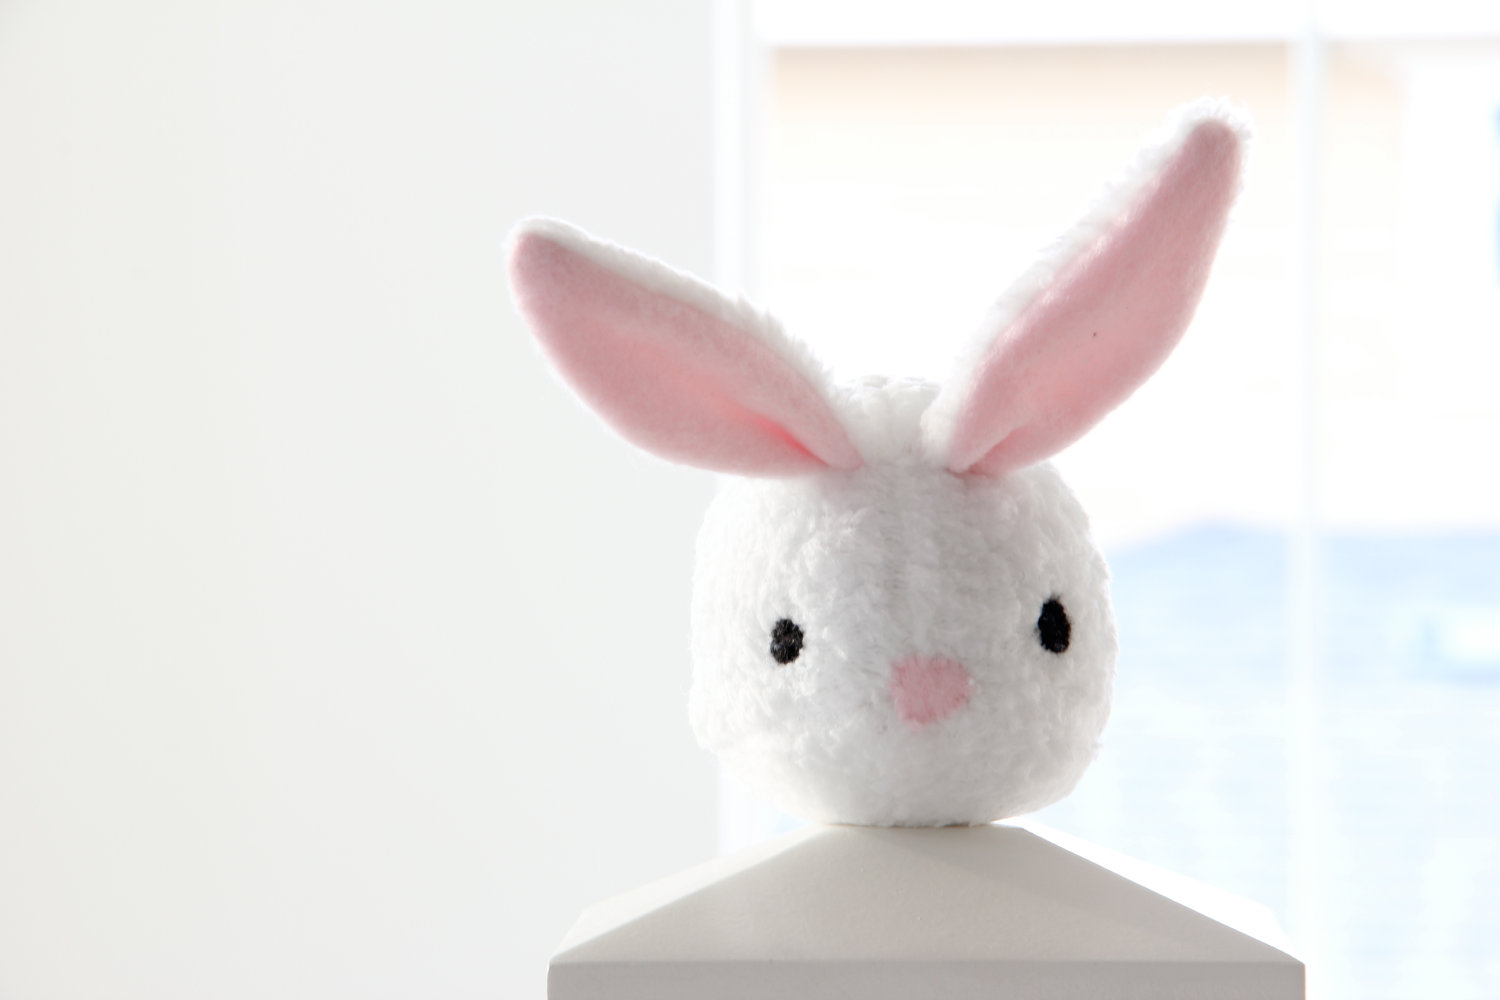 White Bunny Rabbit Plush Toy Cindy Adorable Cute Soft White